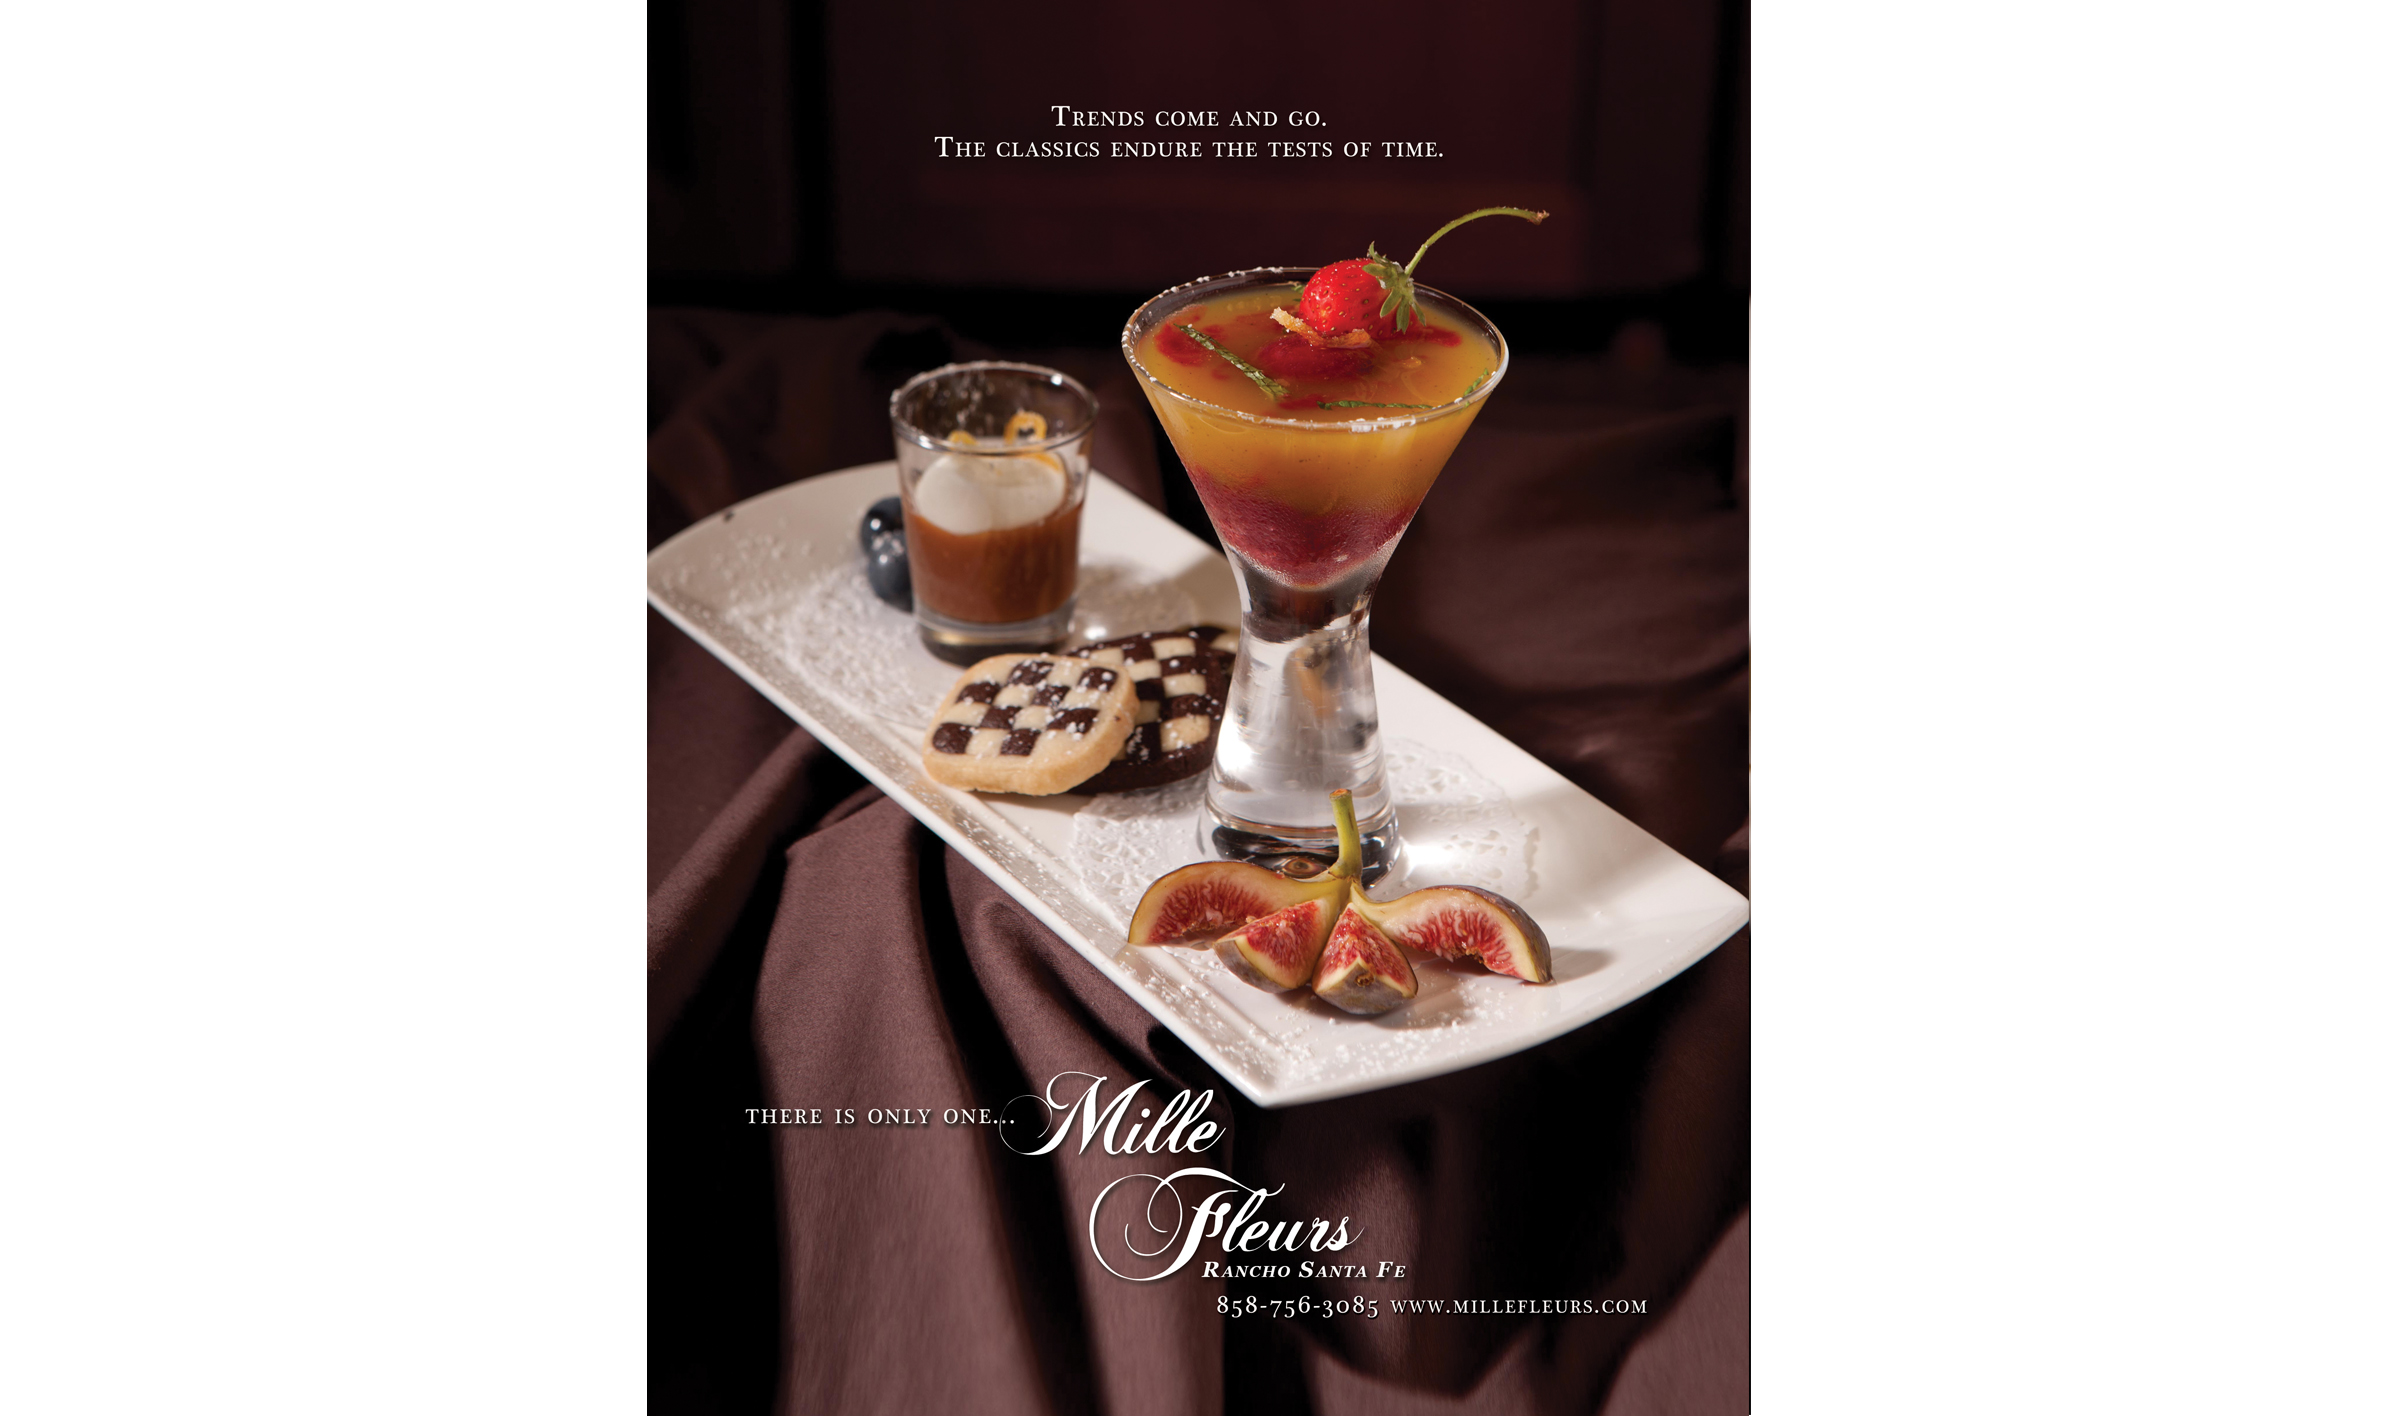 Our Dessert Menu >> Restaurant Advertising Campaigns « Group181 - A Full Service Creative Advertising and Branding ...